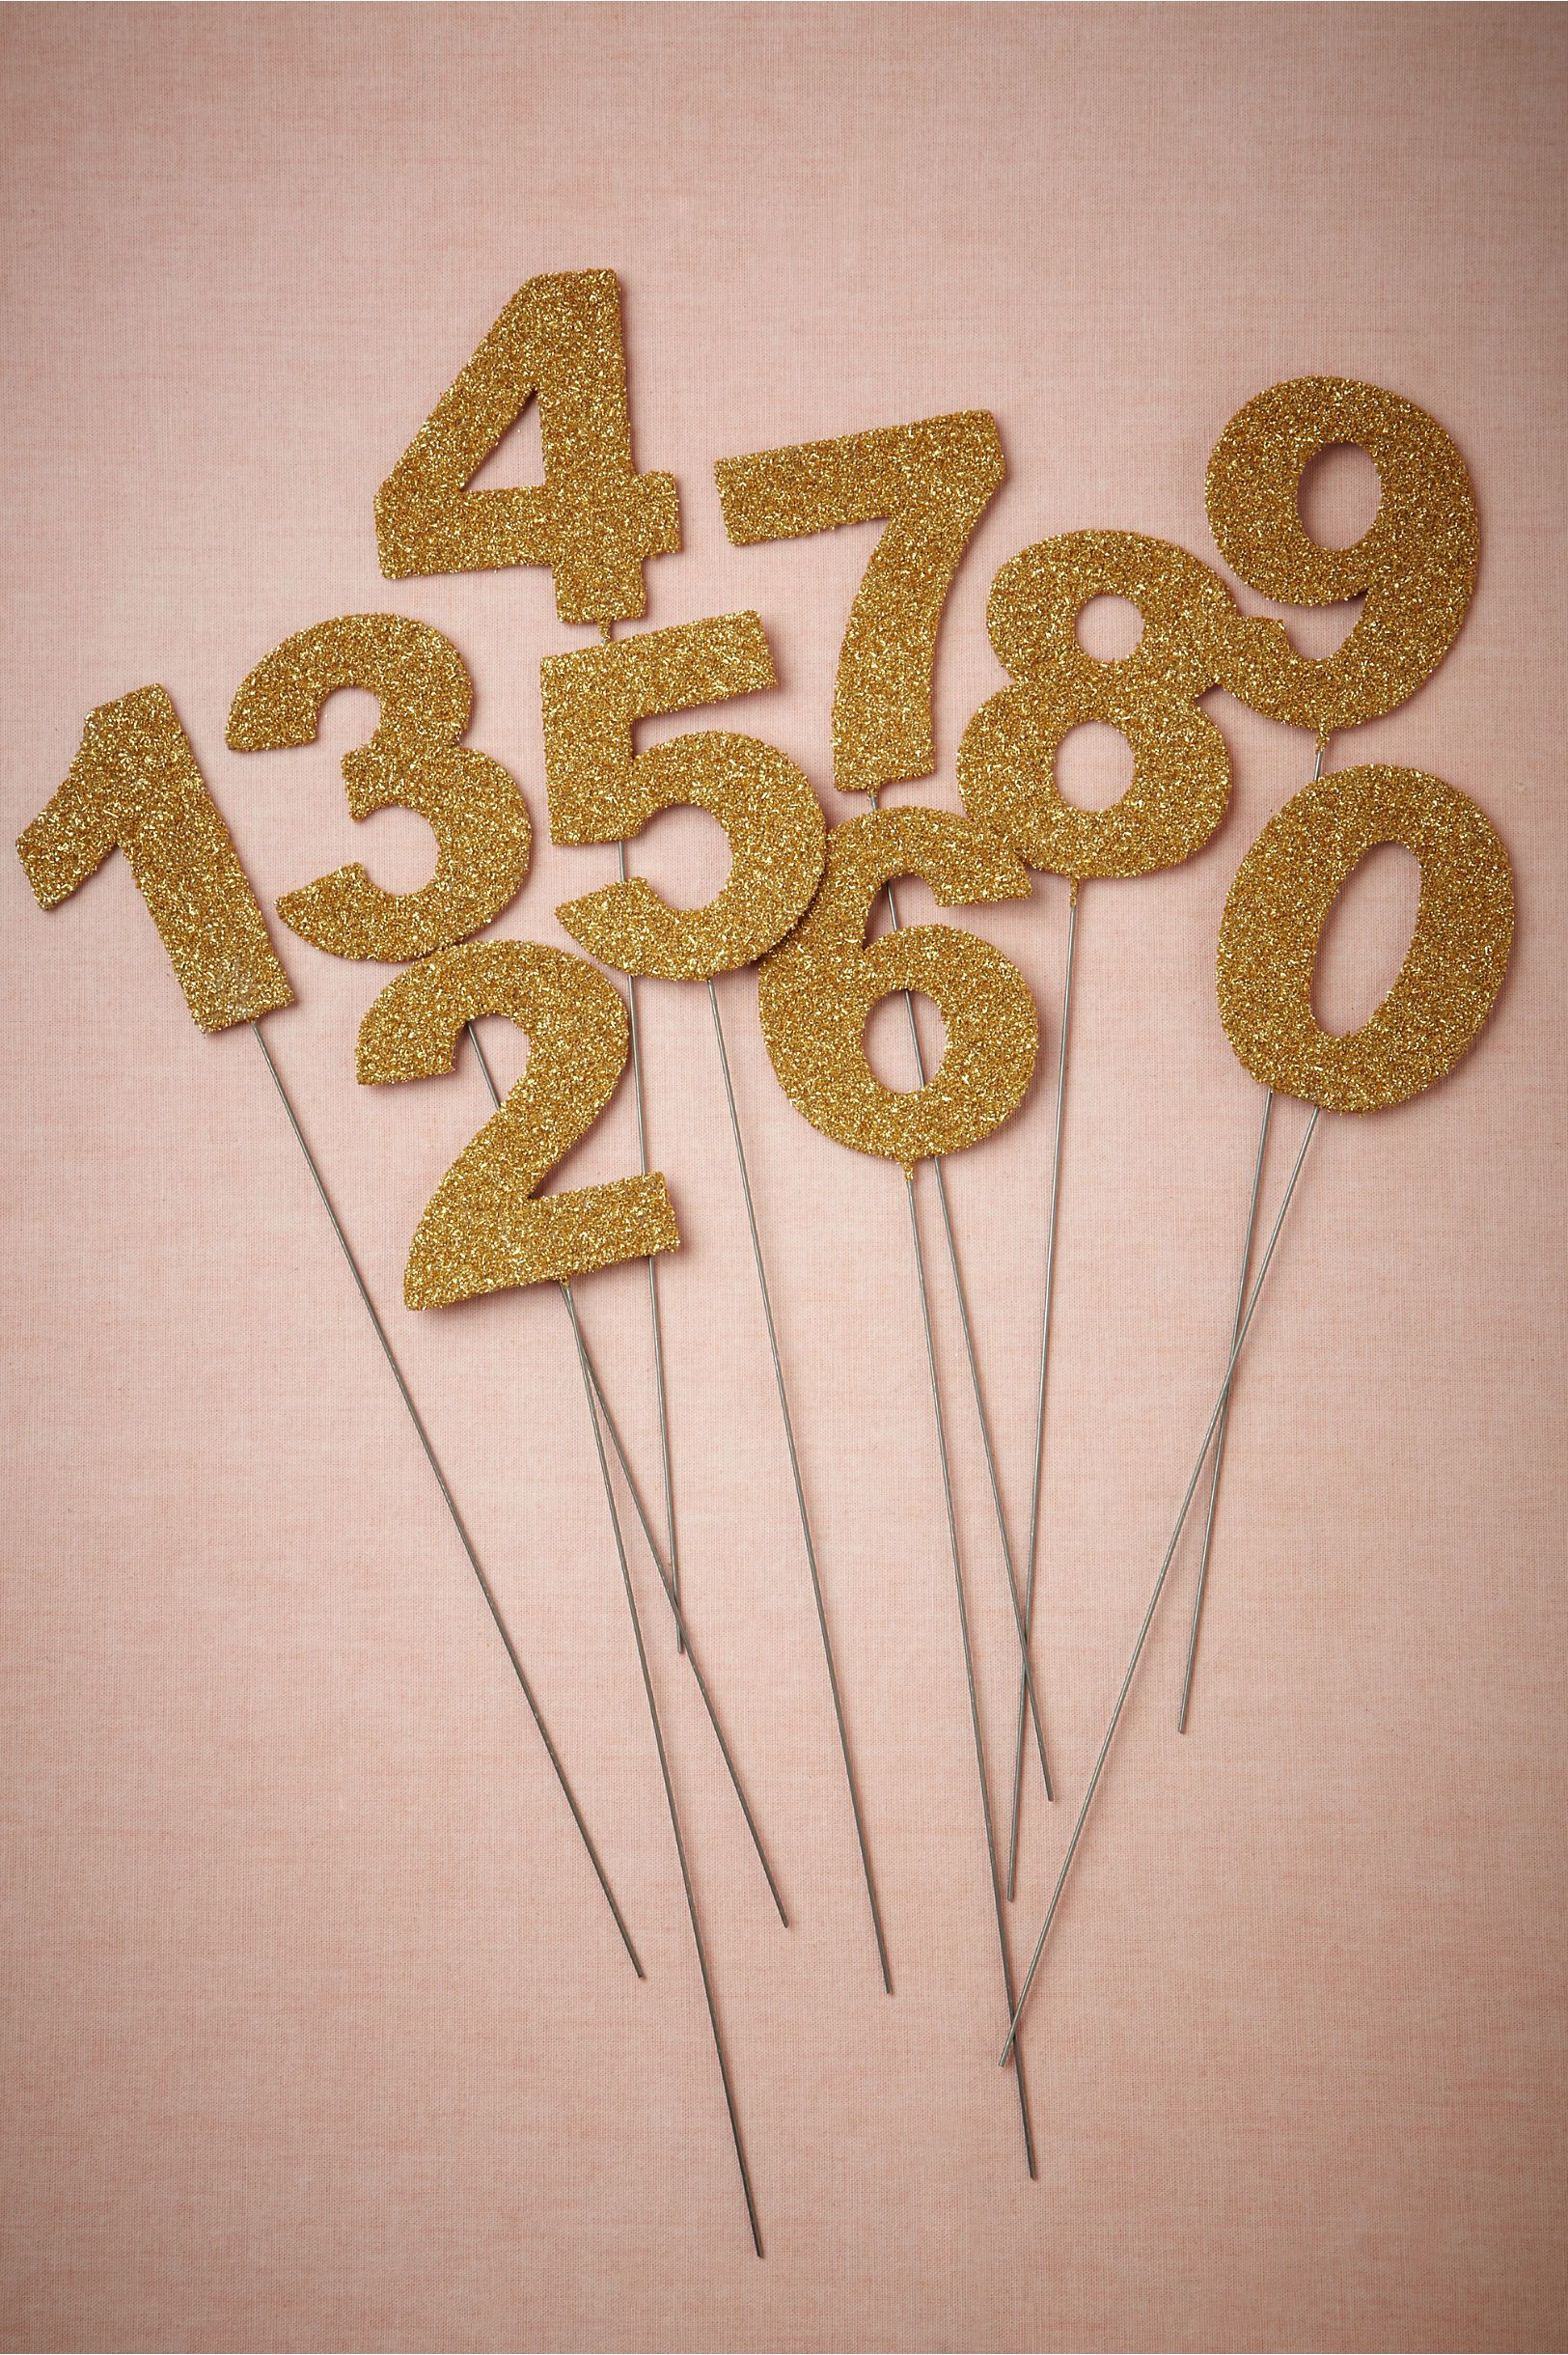 Could Do For Table Number At Wedding Diy Goldtone Stakes From Bhldn